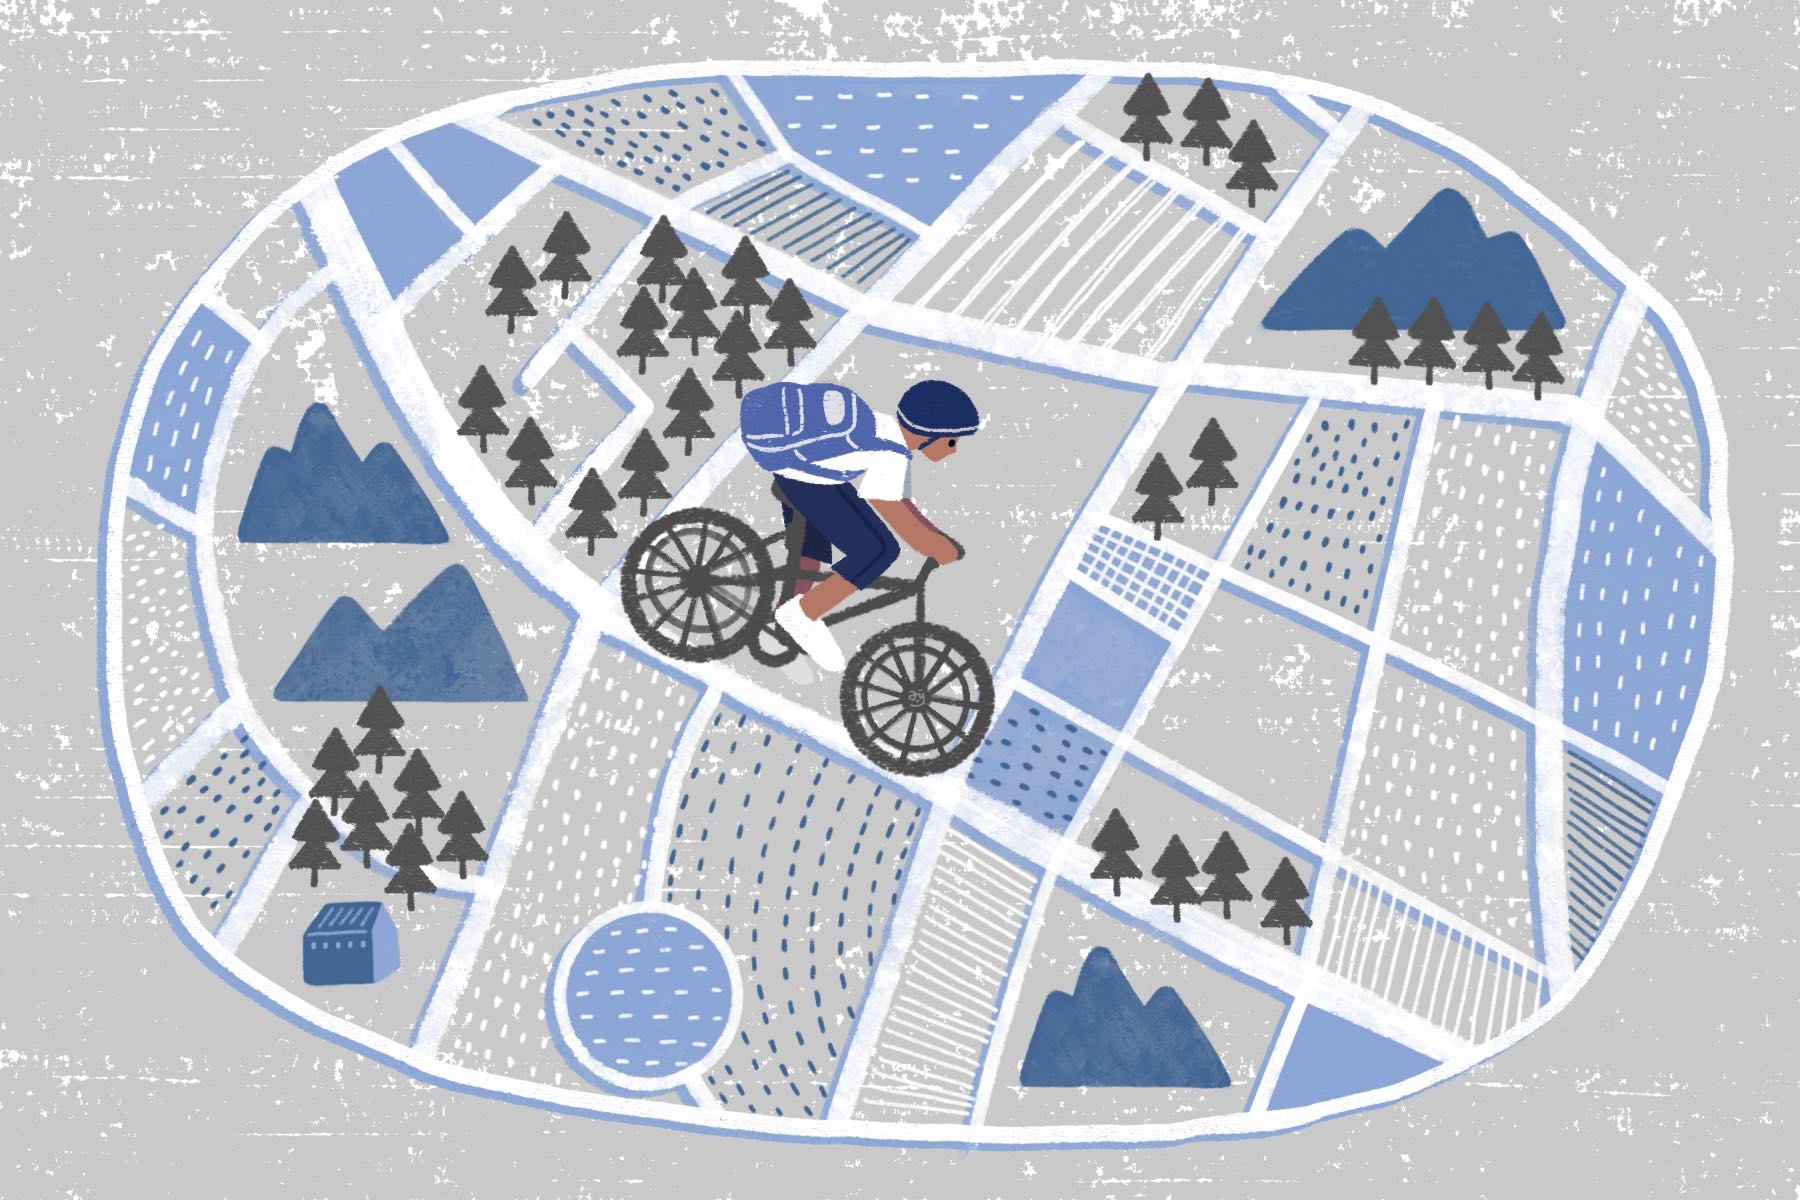 An illustration of a cyclist on the century ride